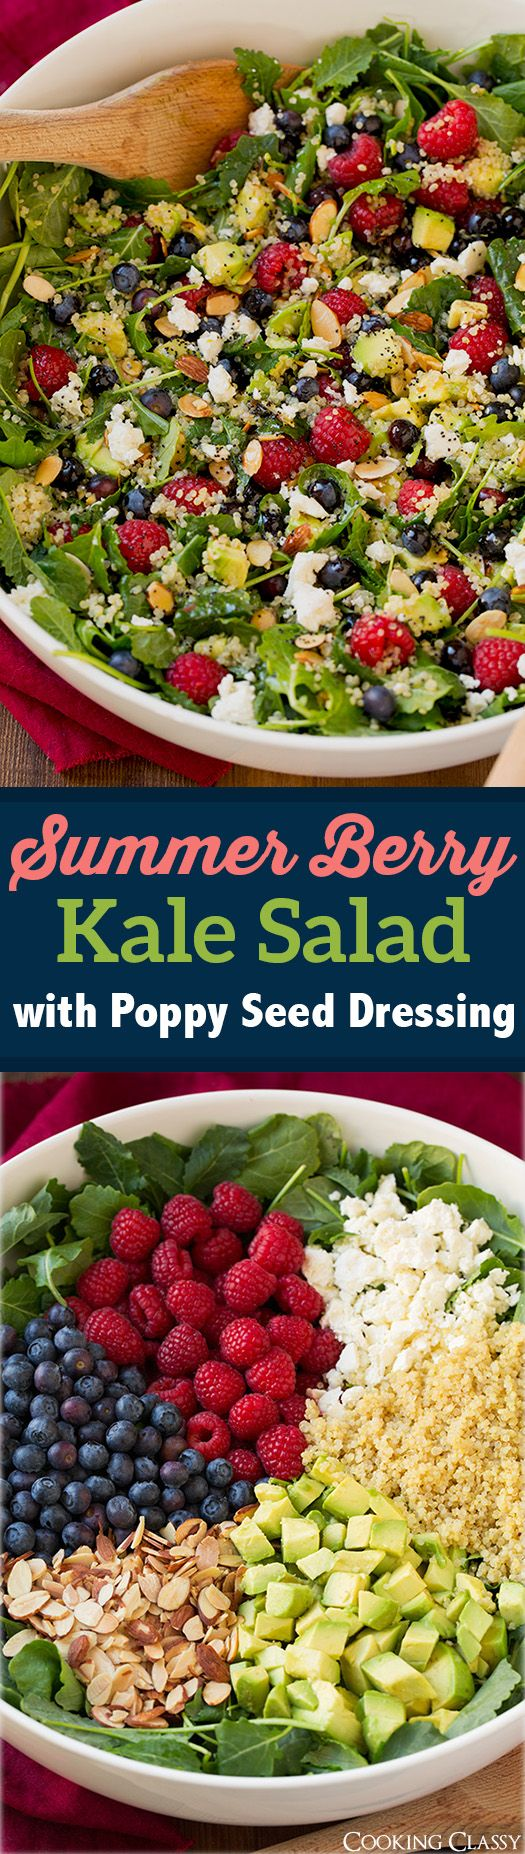 Summer Berry Kale Salad with Poppy Seed Dressing - packed with superfoods and totally delicious! Perfect summer salad!!